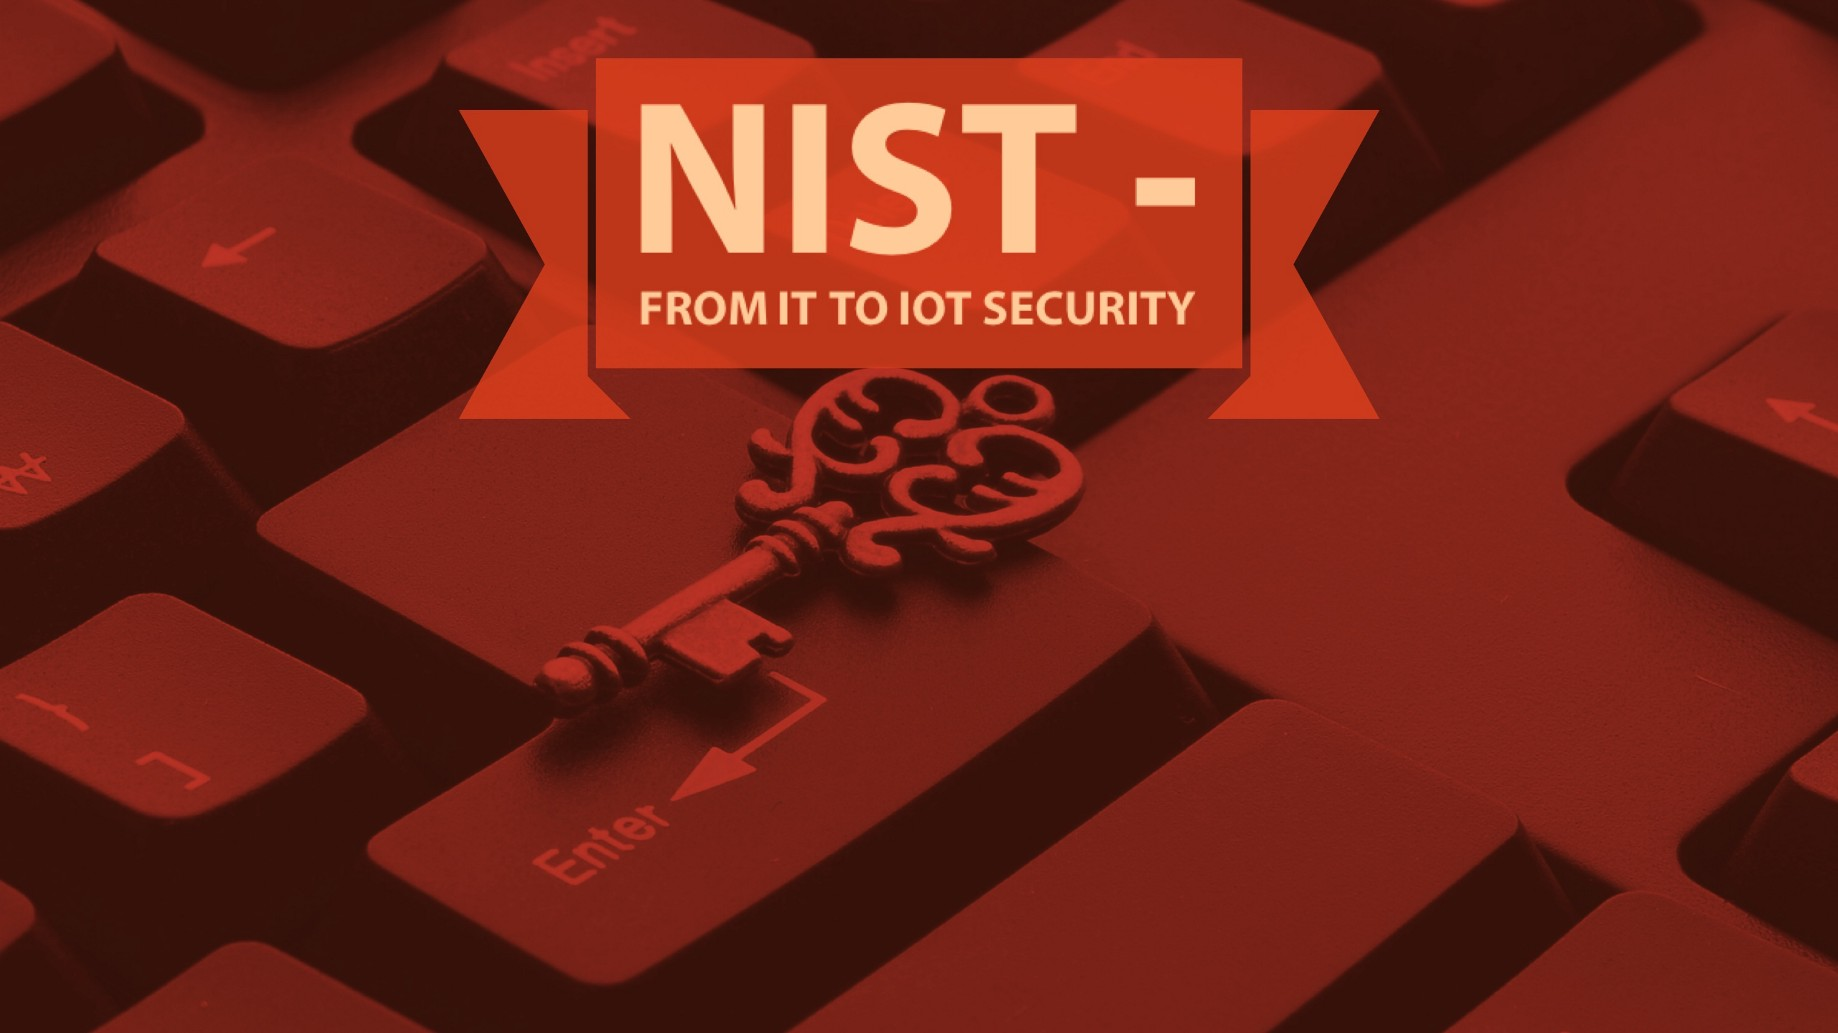 NIST — From IT to IoT Security - Security Compass